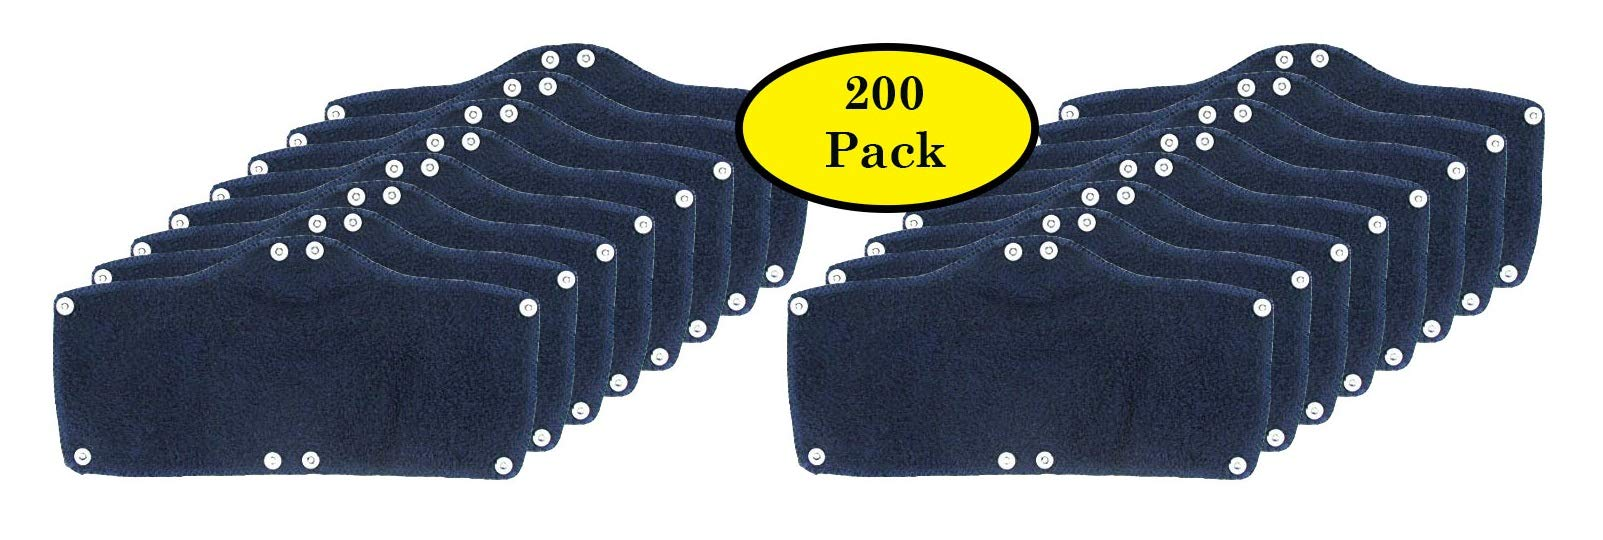 200 Pack Best Hard Hat Sweatband Navy Blue Washable Snap On Sweat Band Liner Safety Accessories